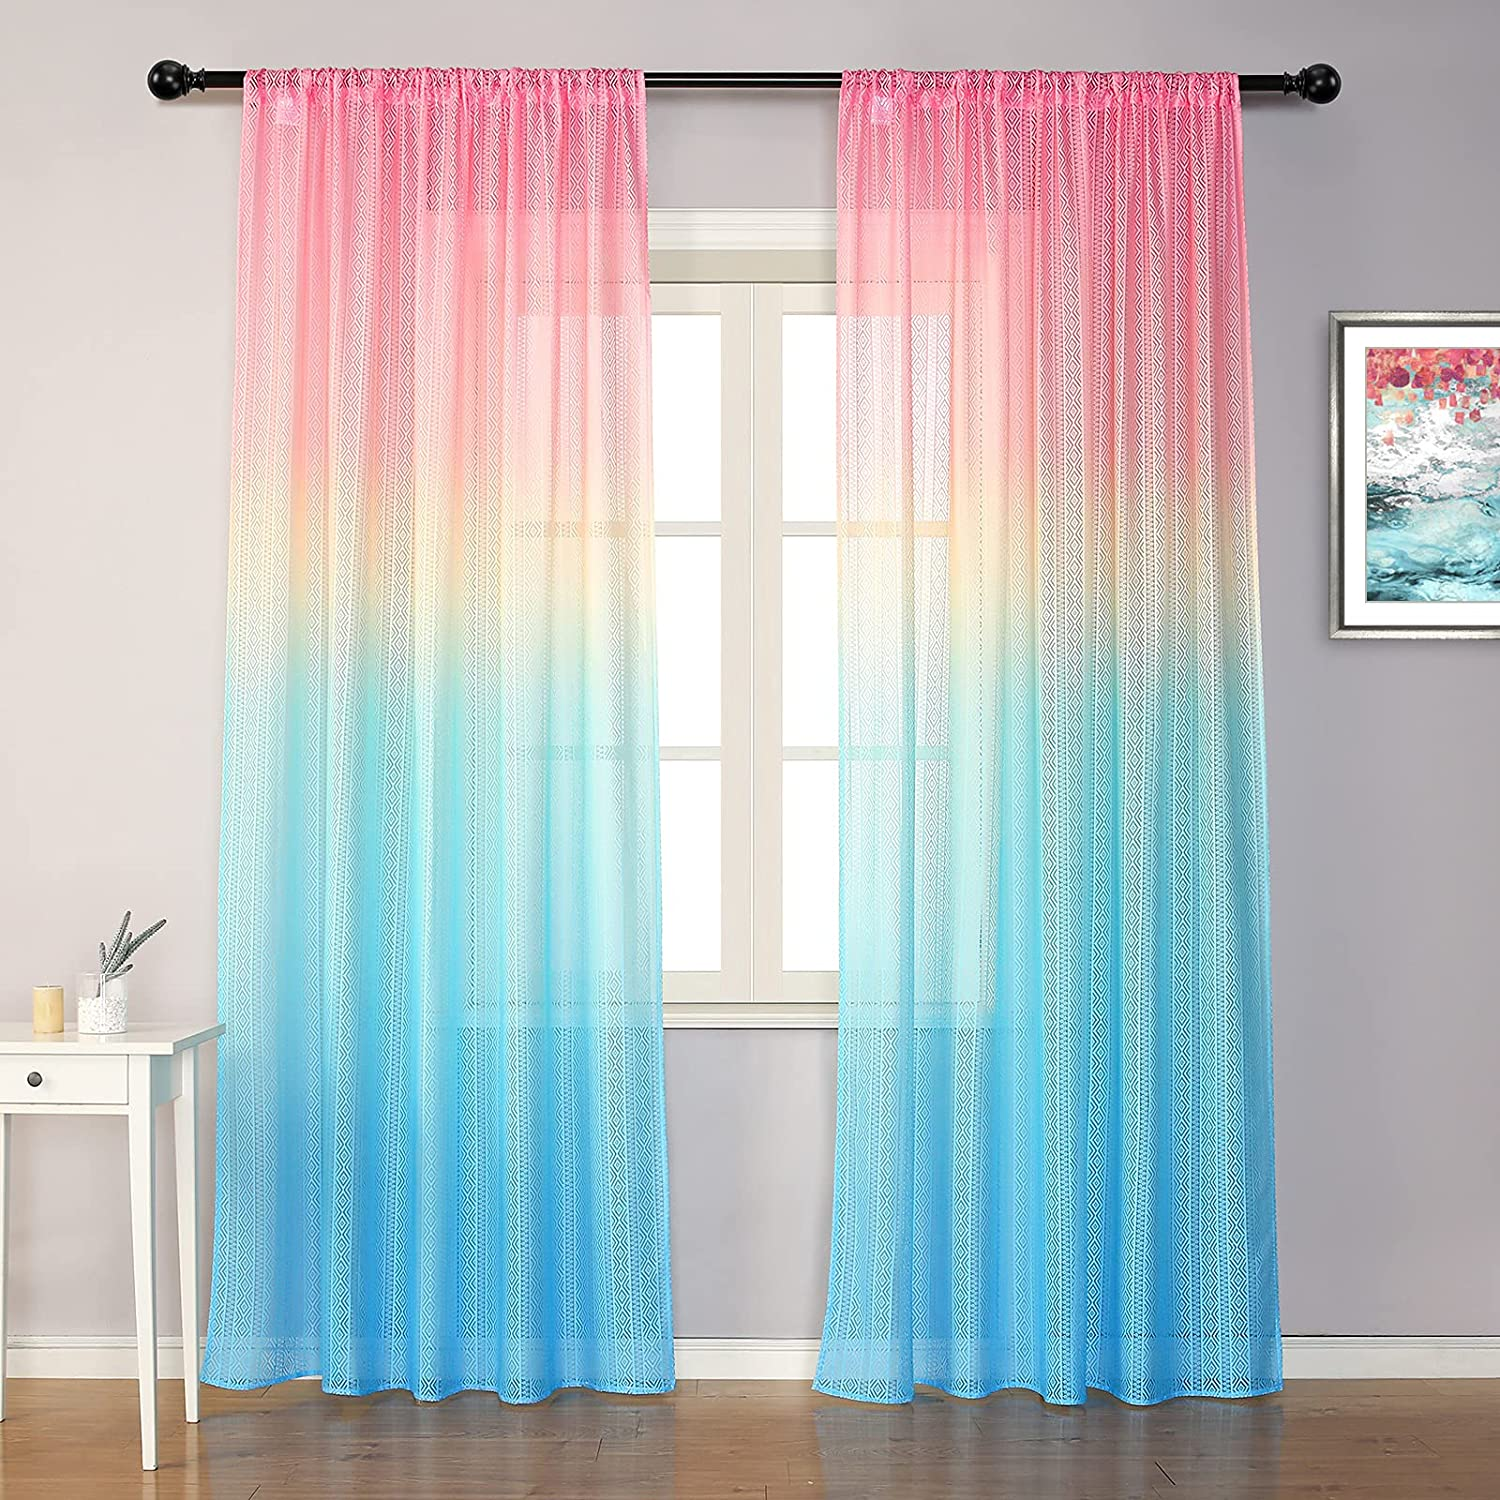 MYSKY HOME Rainbow Curtains for Girls Bedroom Pink Sheer Curtains 95 Inches Long Blue Ombre Curtains Rod Pocket 2 Panels (Pink Blue, 52